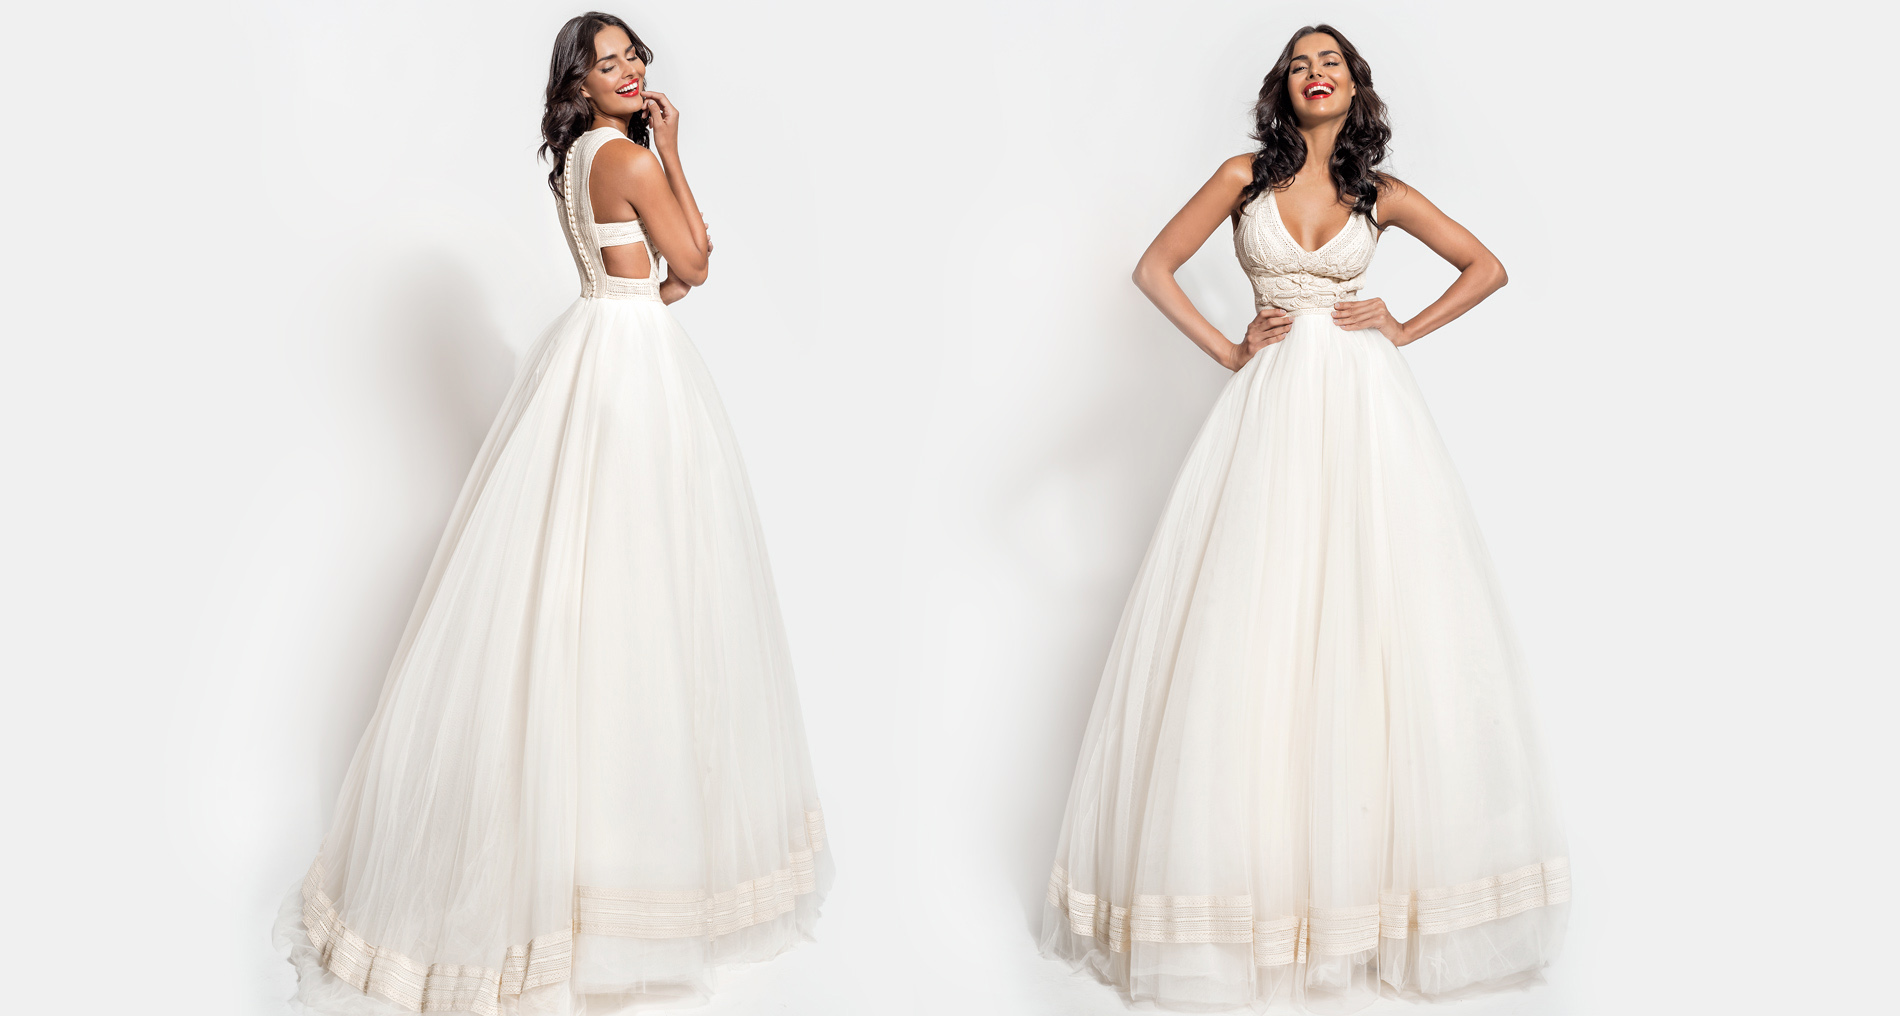 Maera wedding dress from  Hellenic Vintage Essence Collection